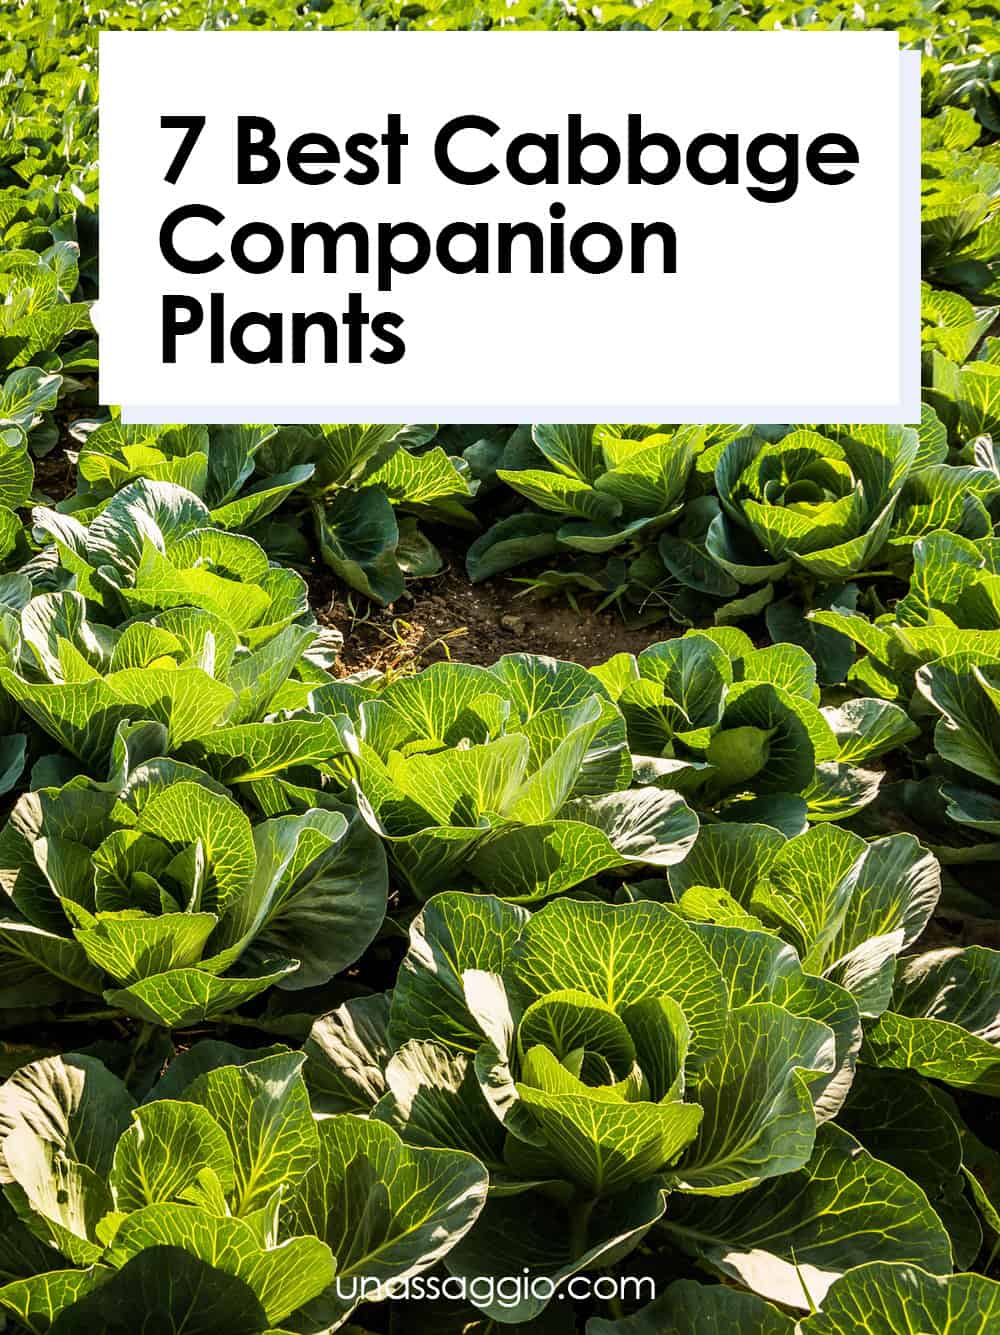 Cabbage Companion Plants: 7 Plants to Grow With Cabbage